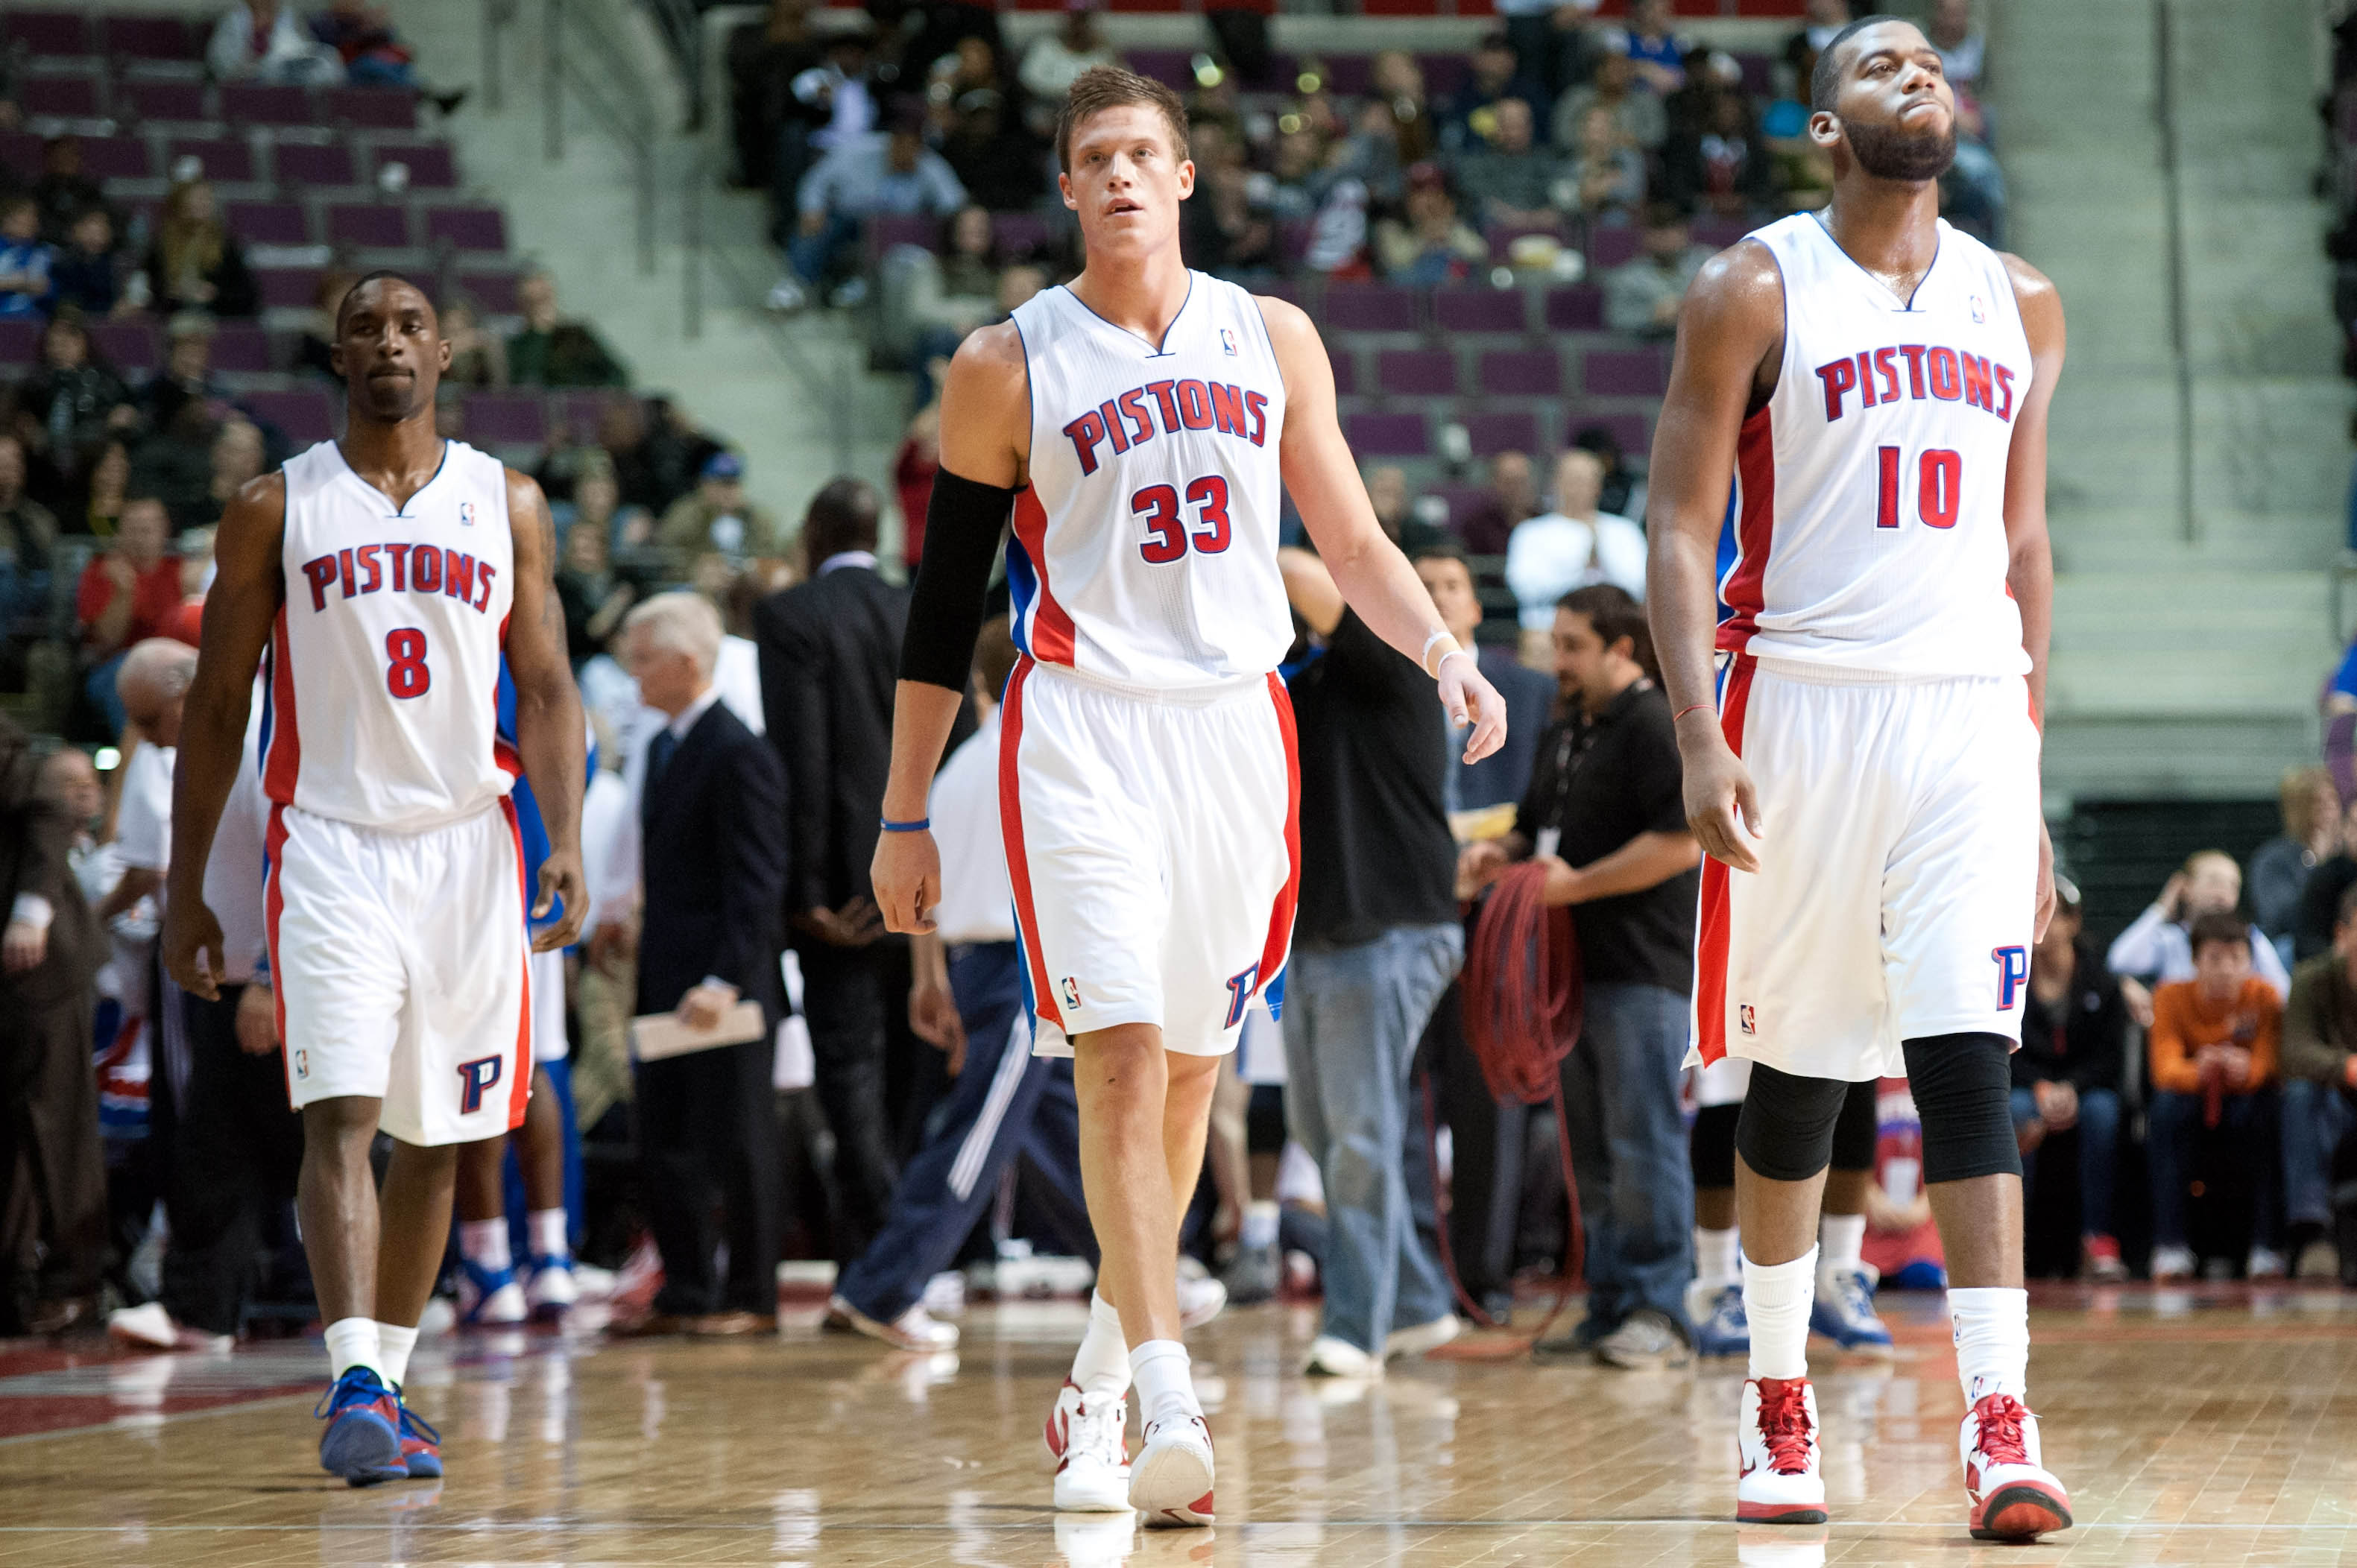 Dec 31, 2011; Auburn Hills, MI, USA; Detroit Pistons power forward Greg Monroe (10), forward Jonas Jerebko (33) and shooting guard Ben Gordon (8) during the second half against the Indiana Pacers at The Palace. Detroit won 96-88.